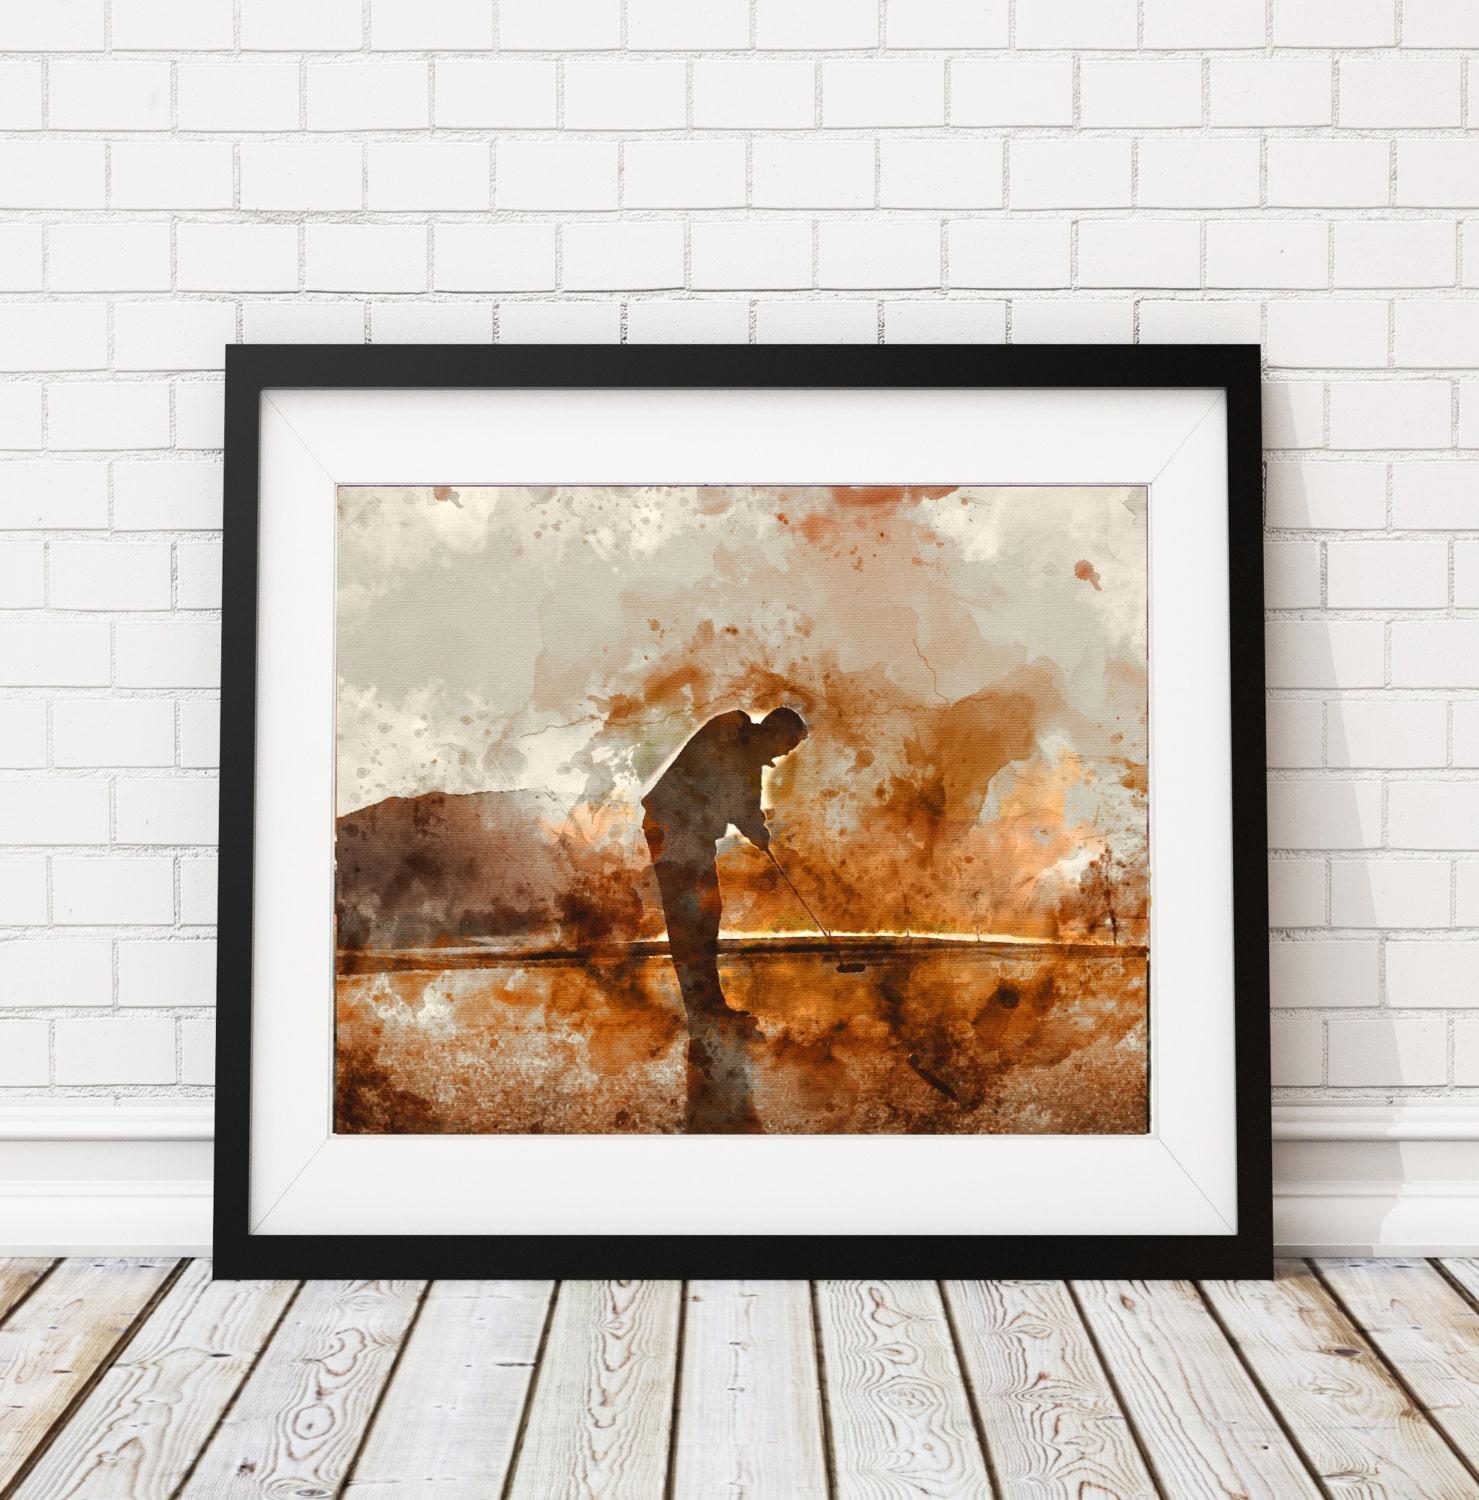 Office Pictures For Walls Golf: Golf Print, Golf Watercolor Painting, Golf Art, Golf